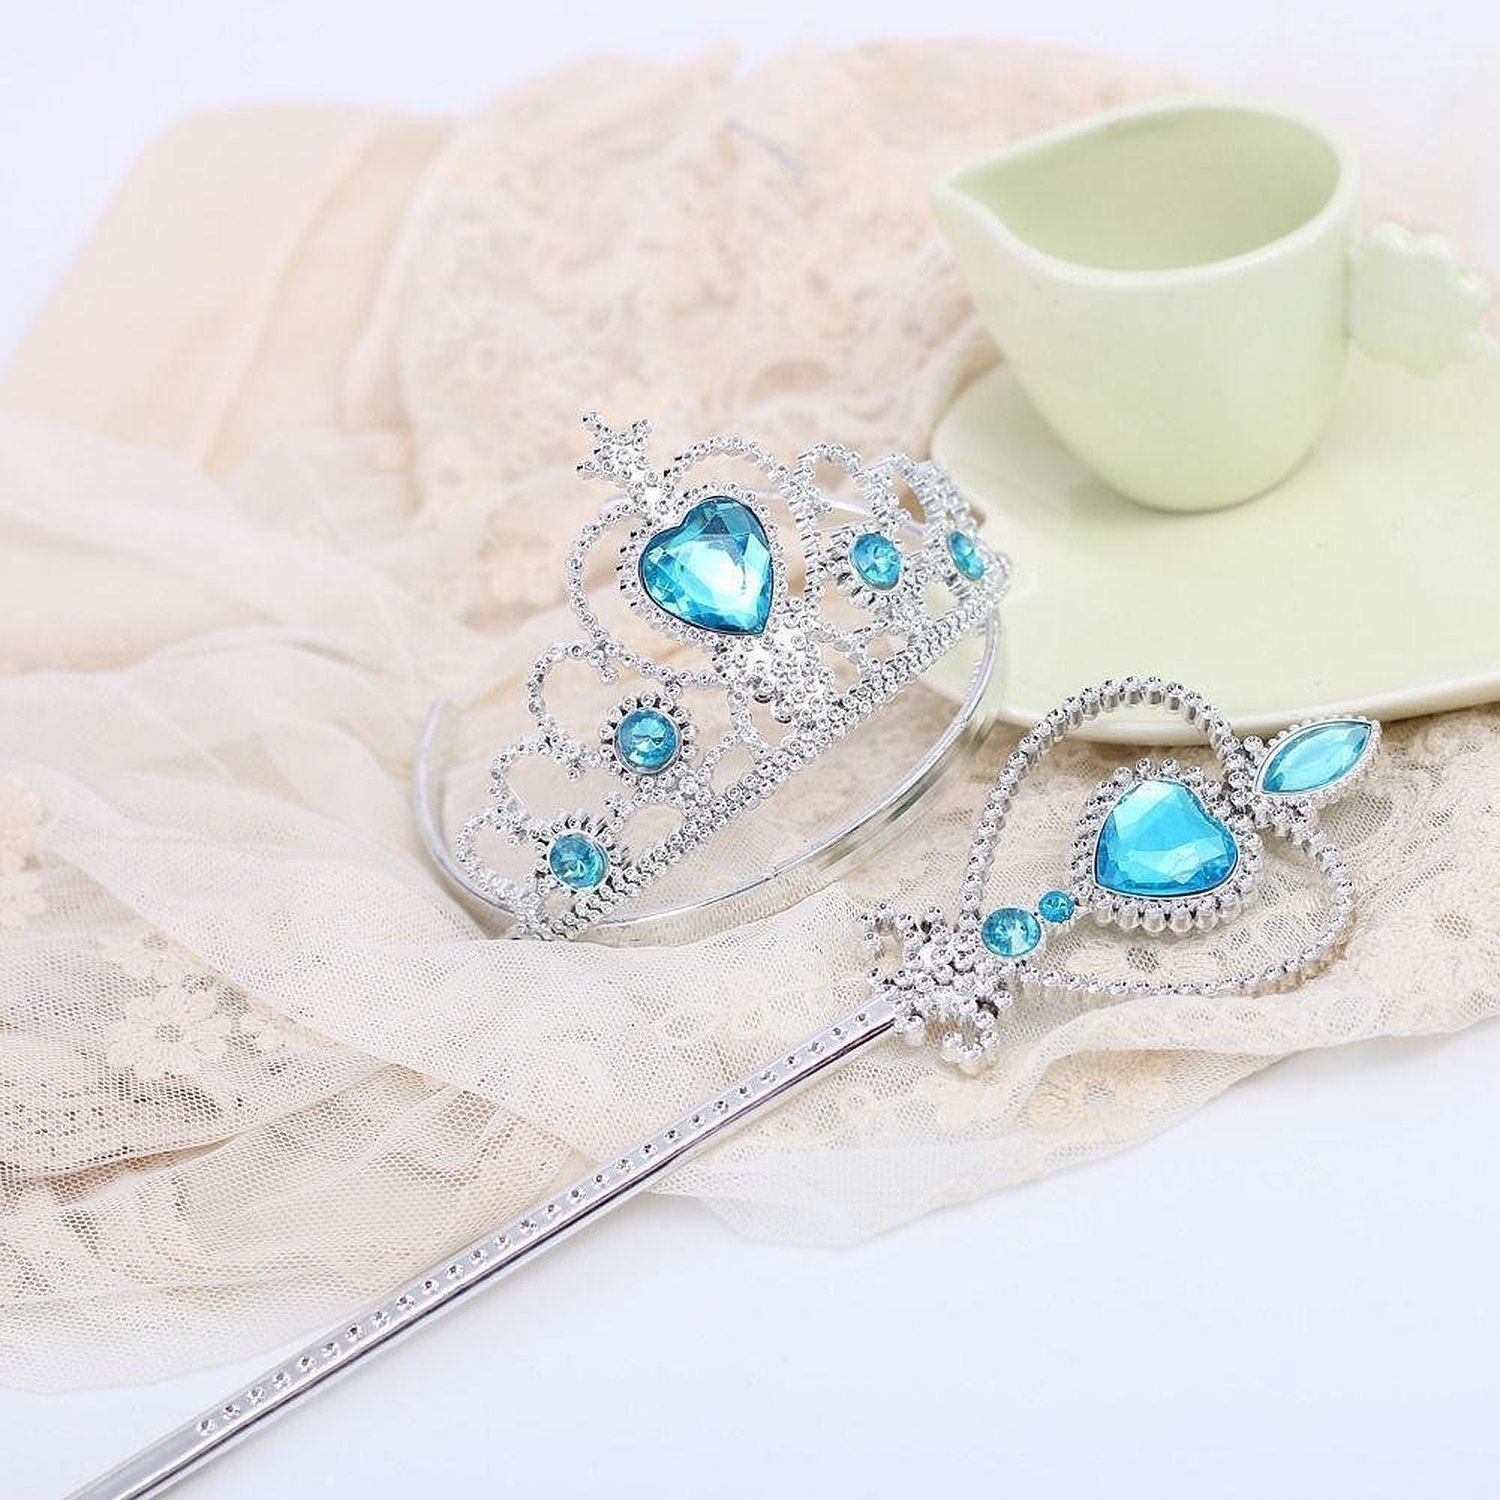 Princess Dress up Party Accessories 3 Piece Gift Set Gloves Tiara and Wand